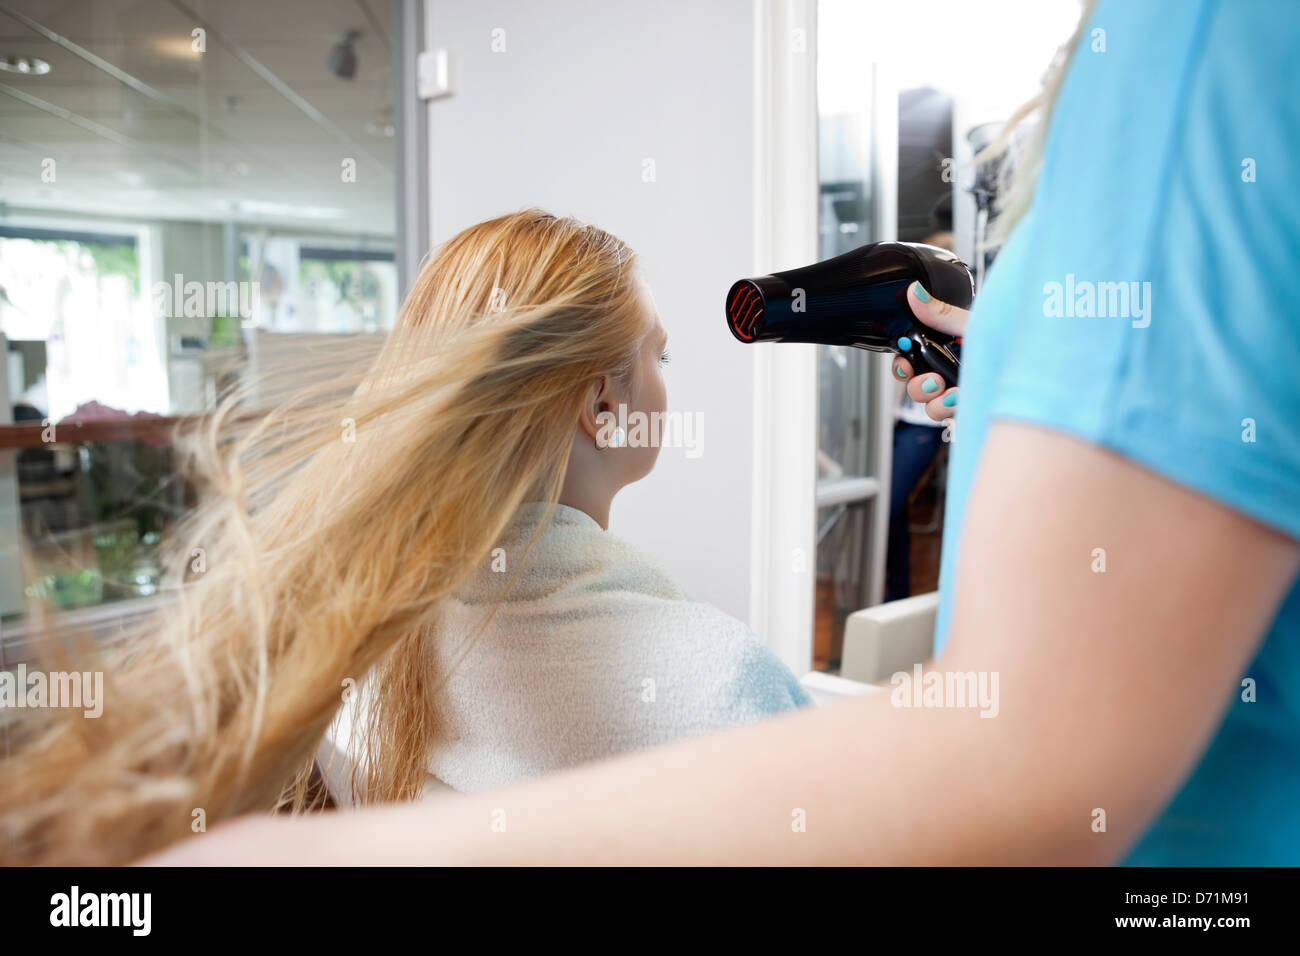 Blow drying Hair Photo Stock